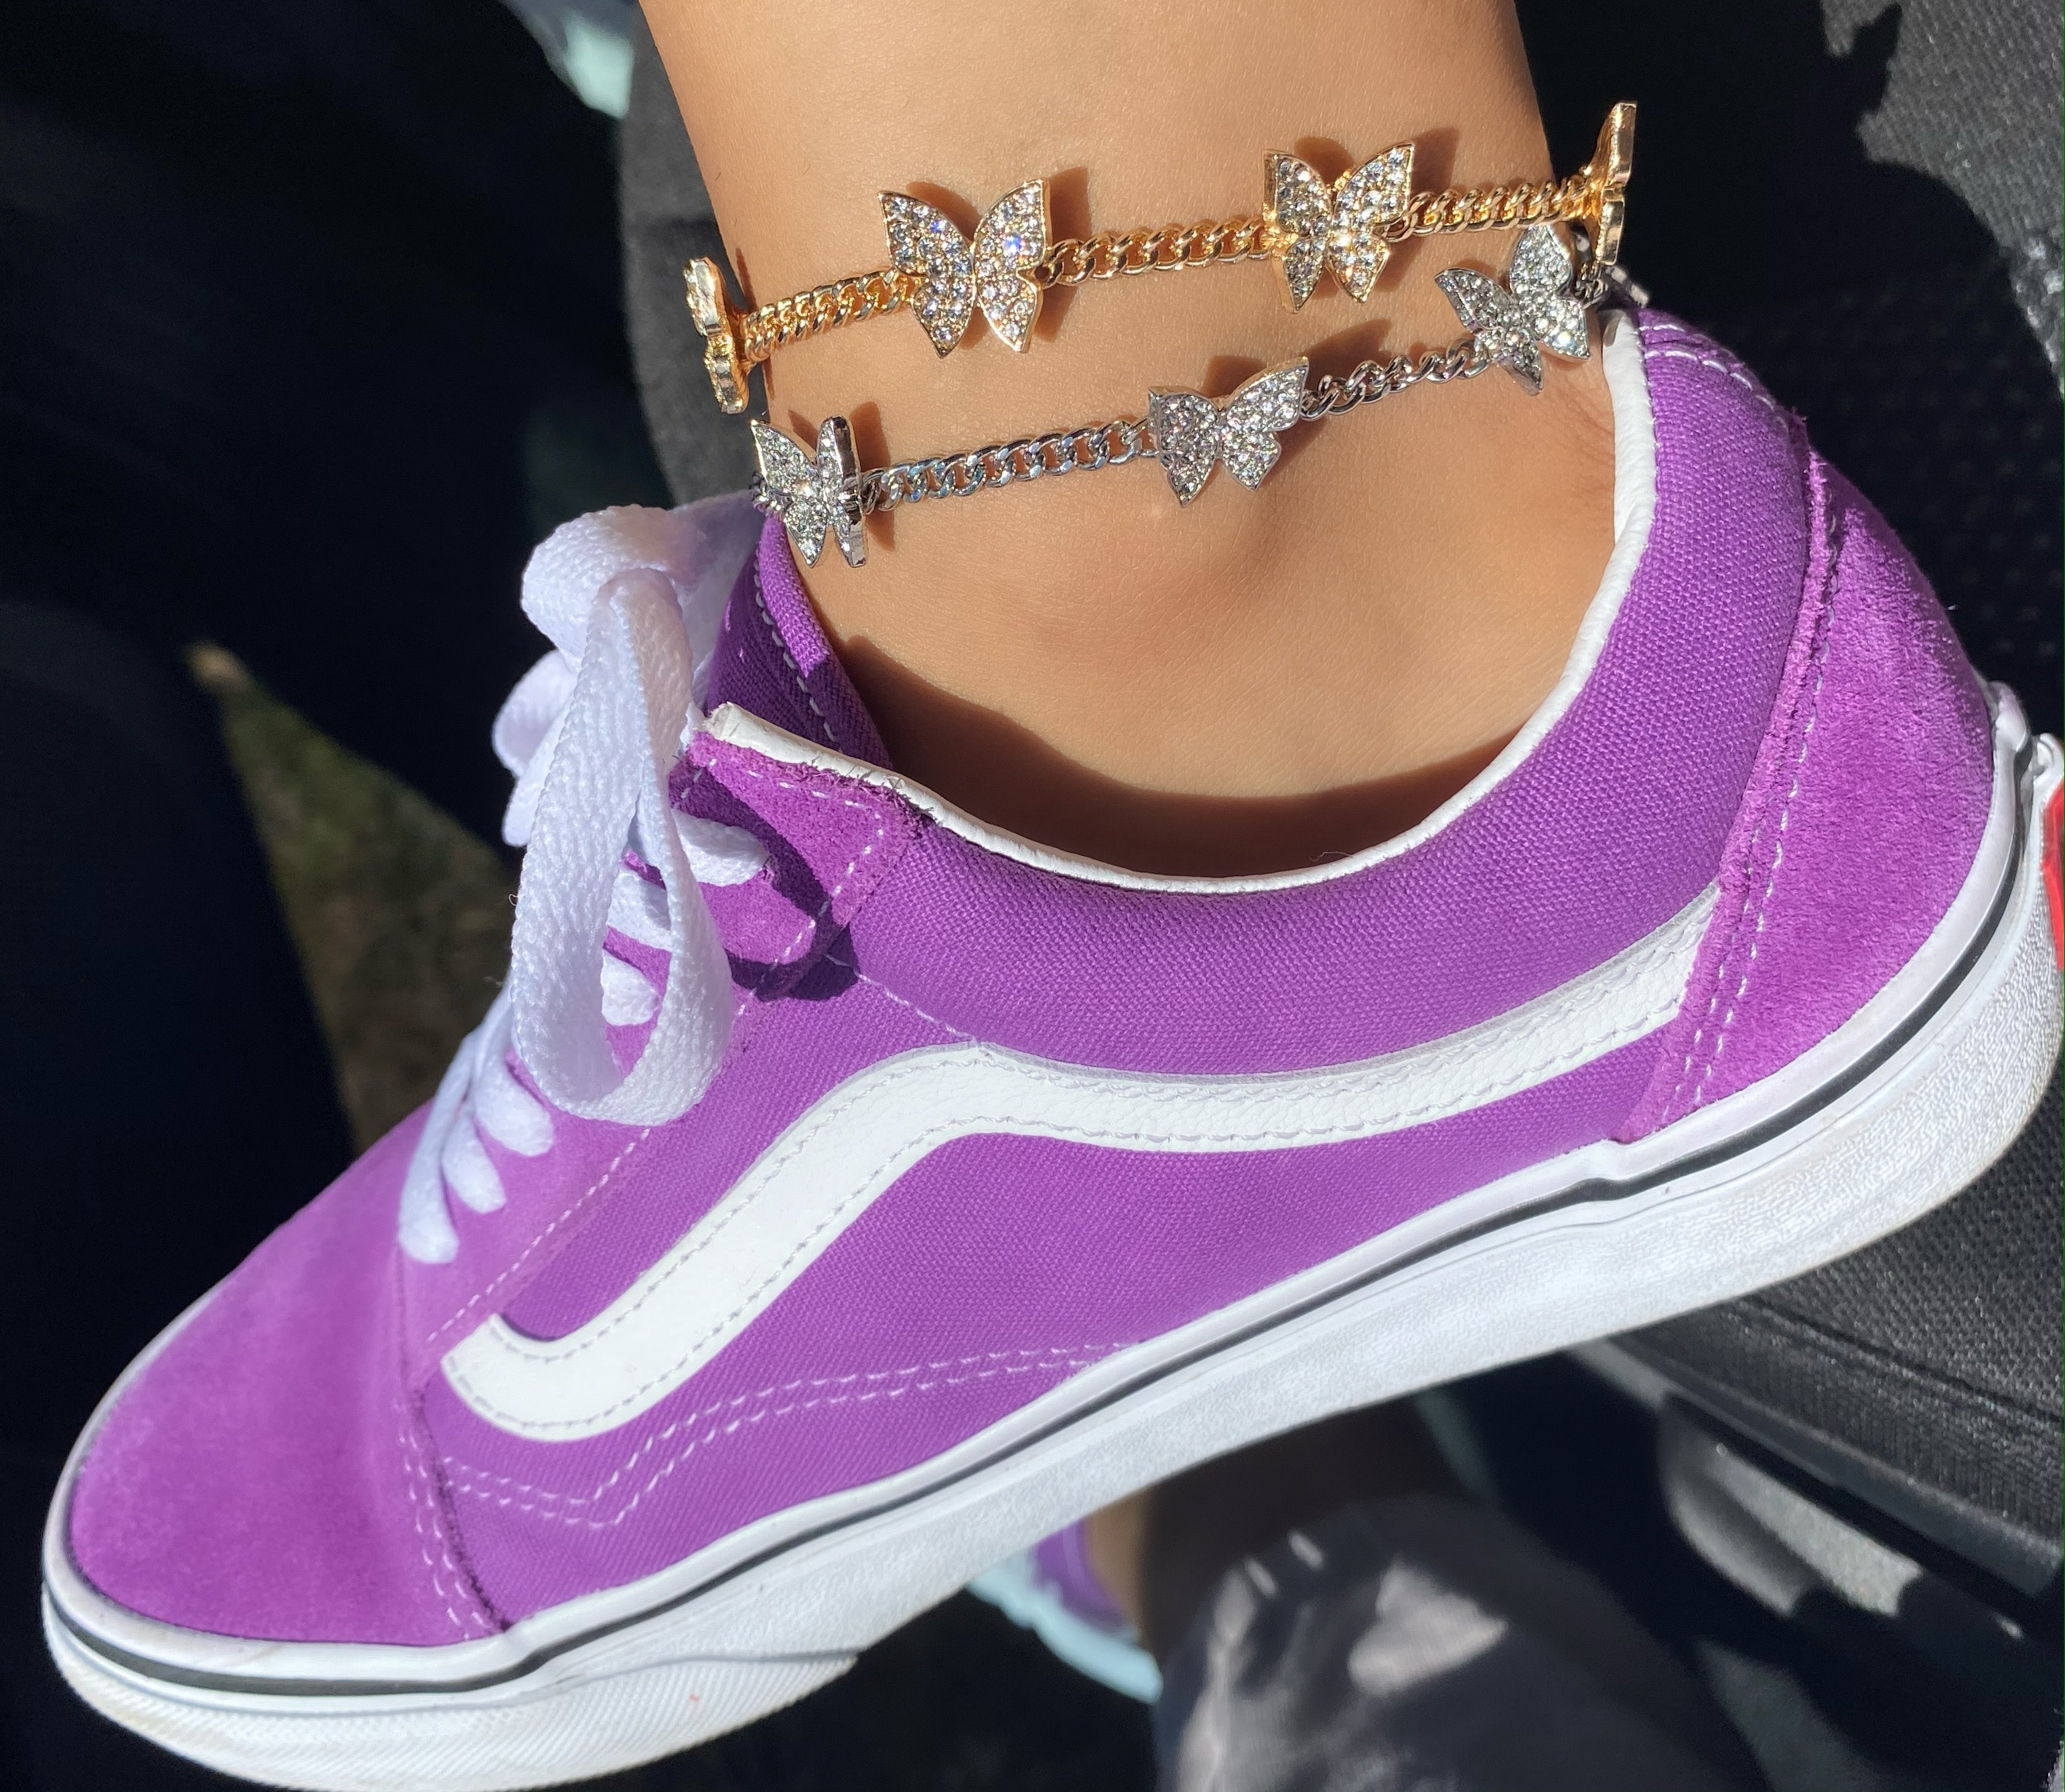 Queen butterfly anklet